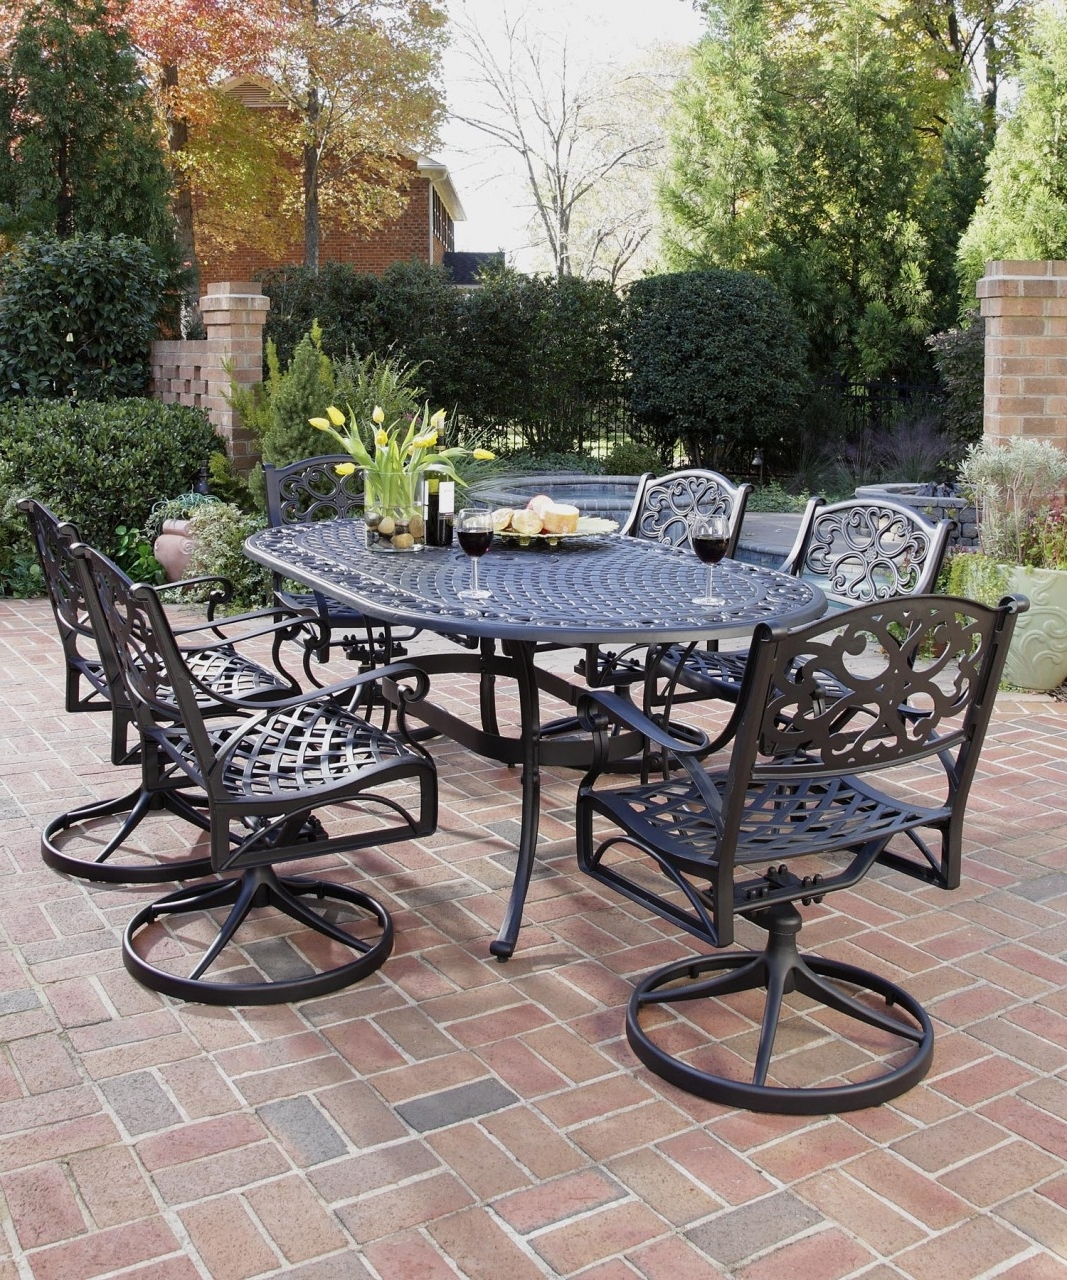 Top Wrought Iron Patio Furniture Sets : Sathoud Decors – To Buy With Widely Used Wrought Iron Patio Conversation Sets (View 9 of 15)